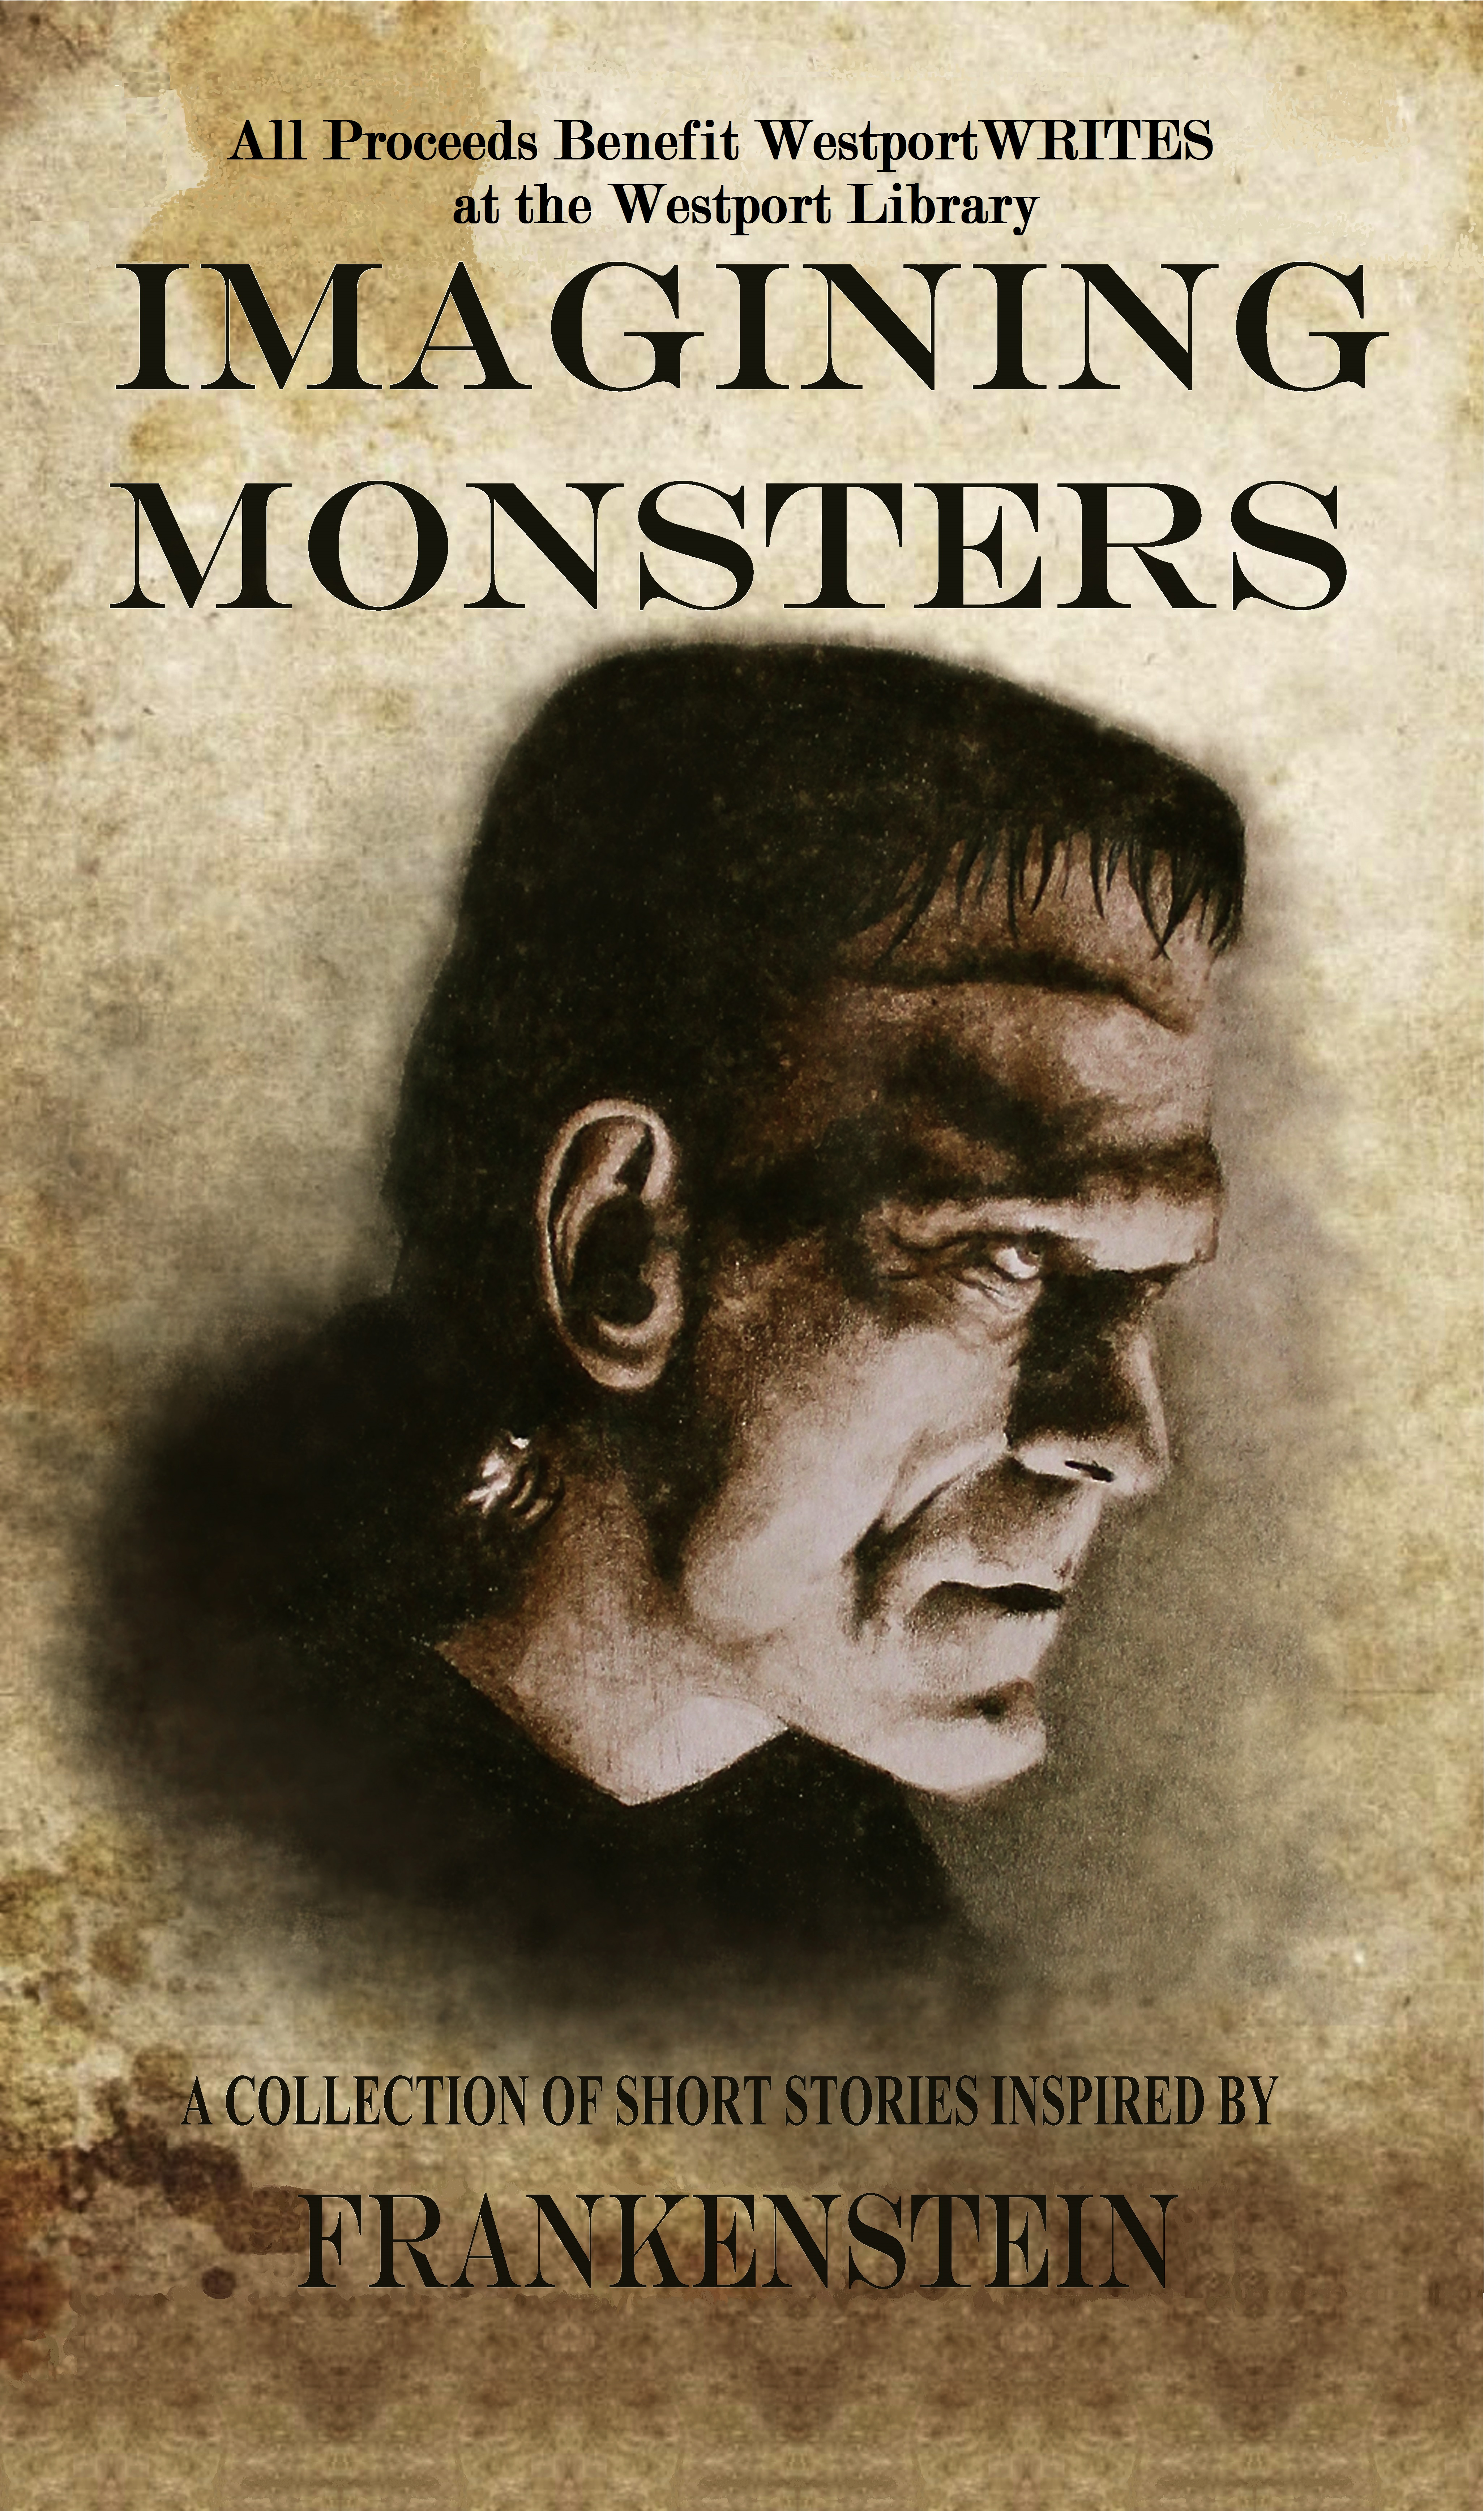 IMAGINING MONSTERS COVER